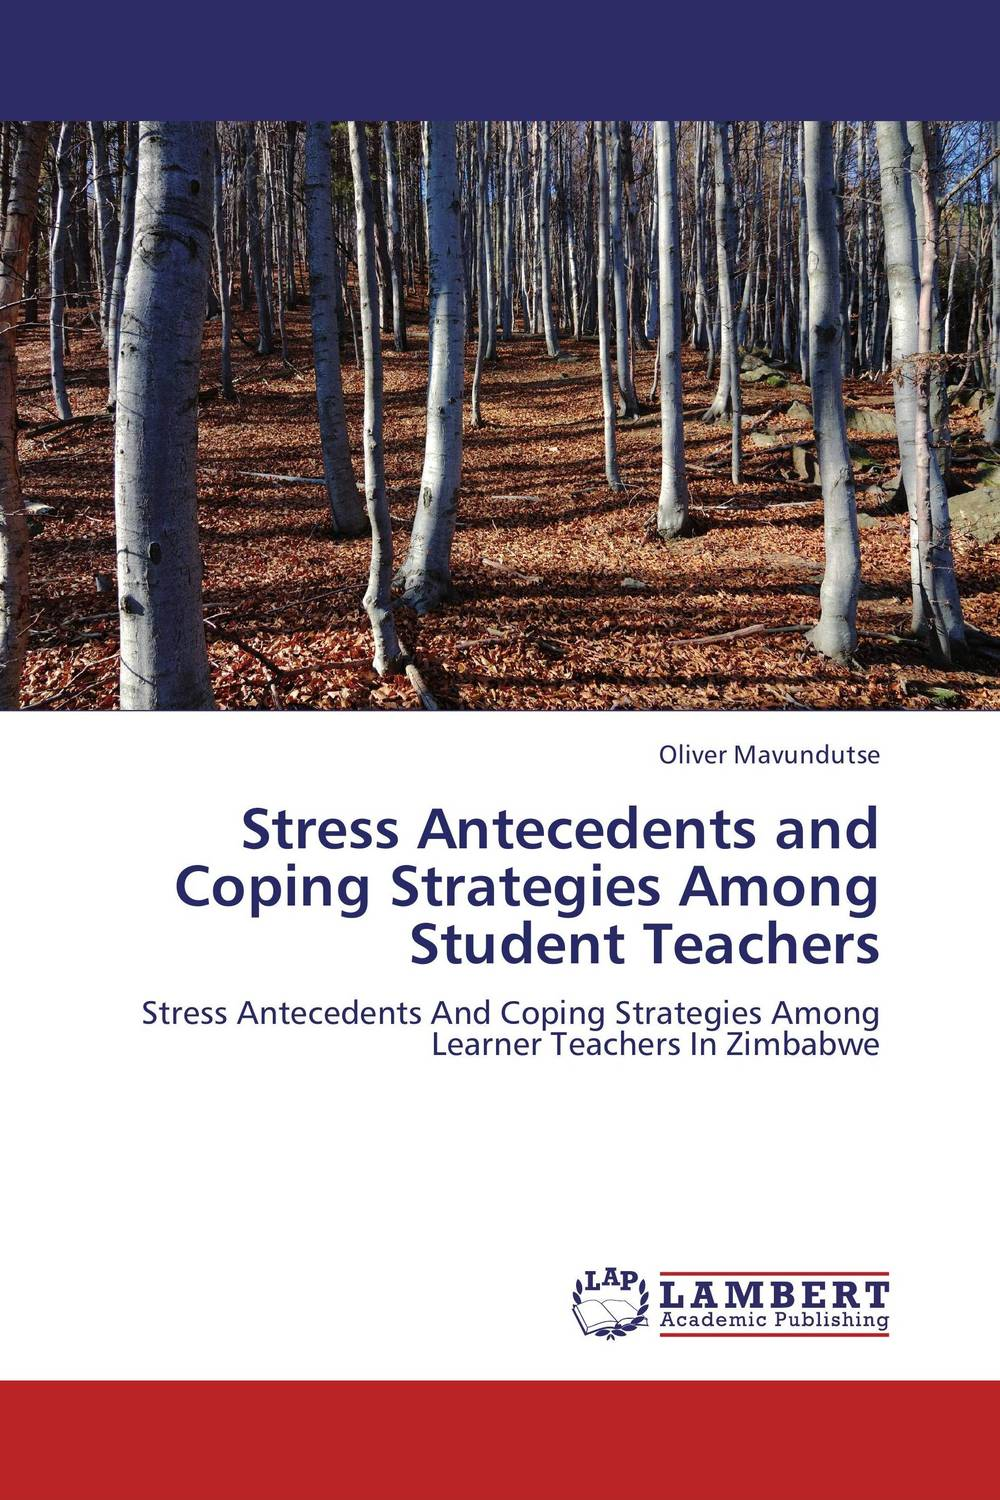 Stress Antecedents and Coping Strategies Among Student Teachers cassandra c green the effectiveness of a first year learning strategies seminar